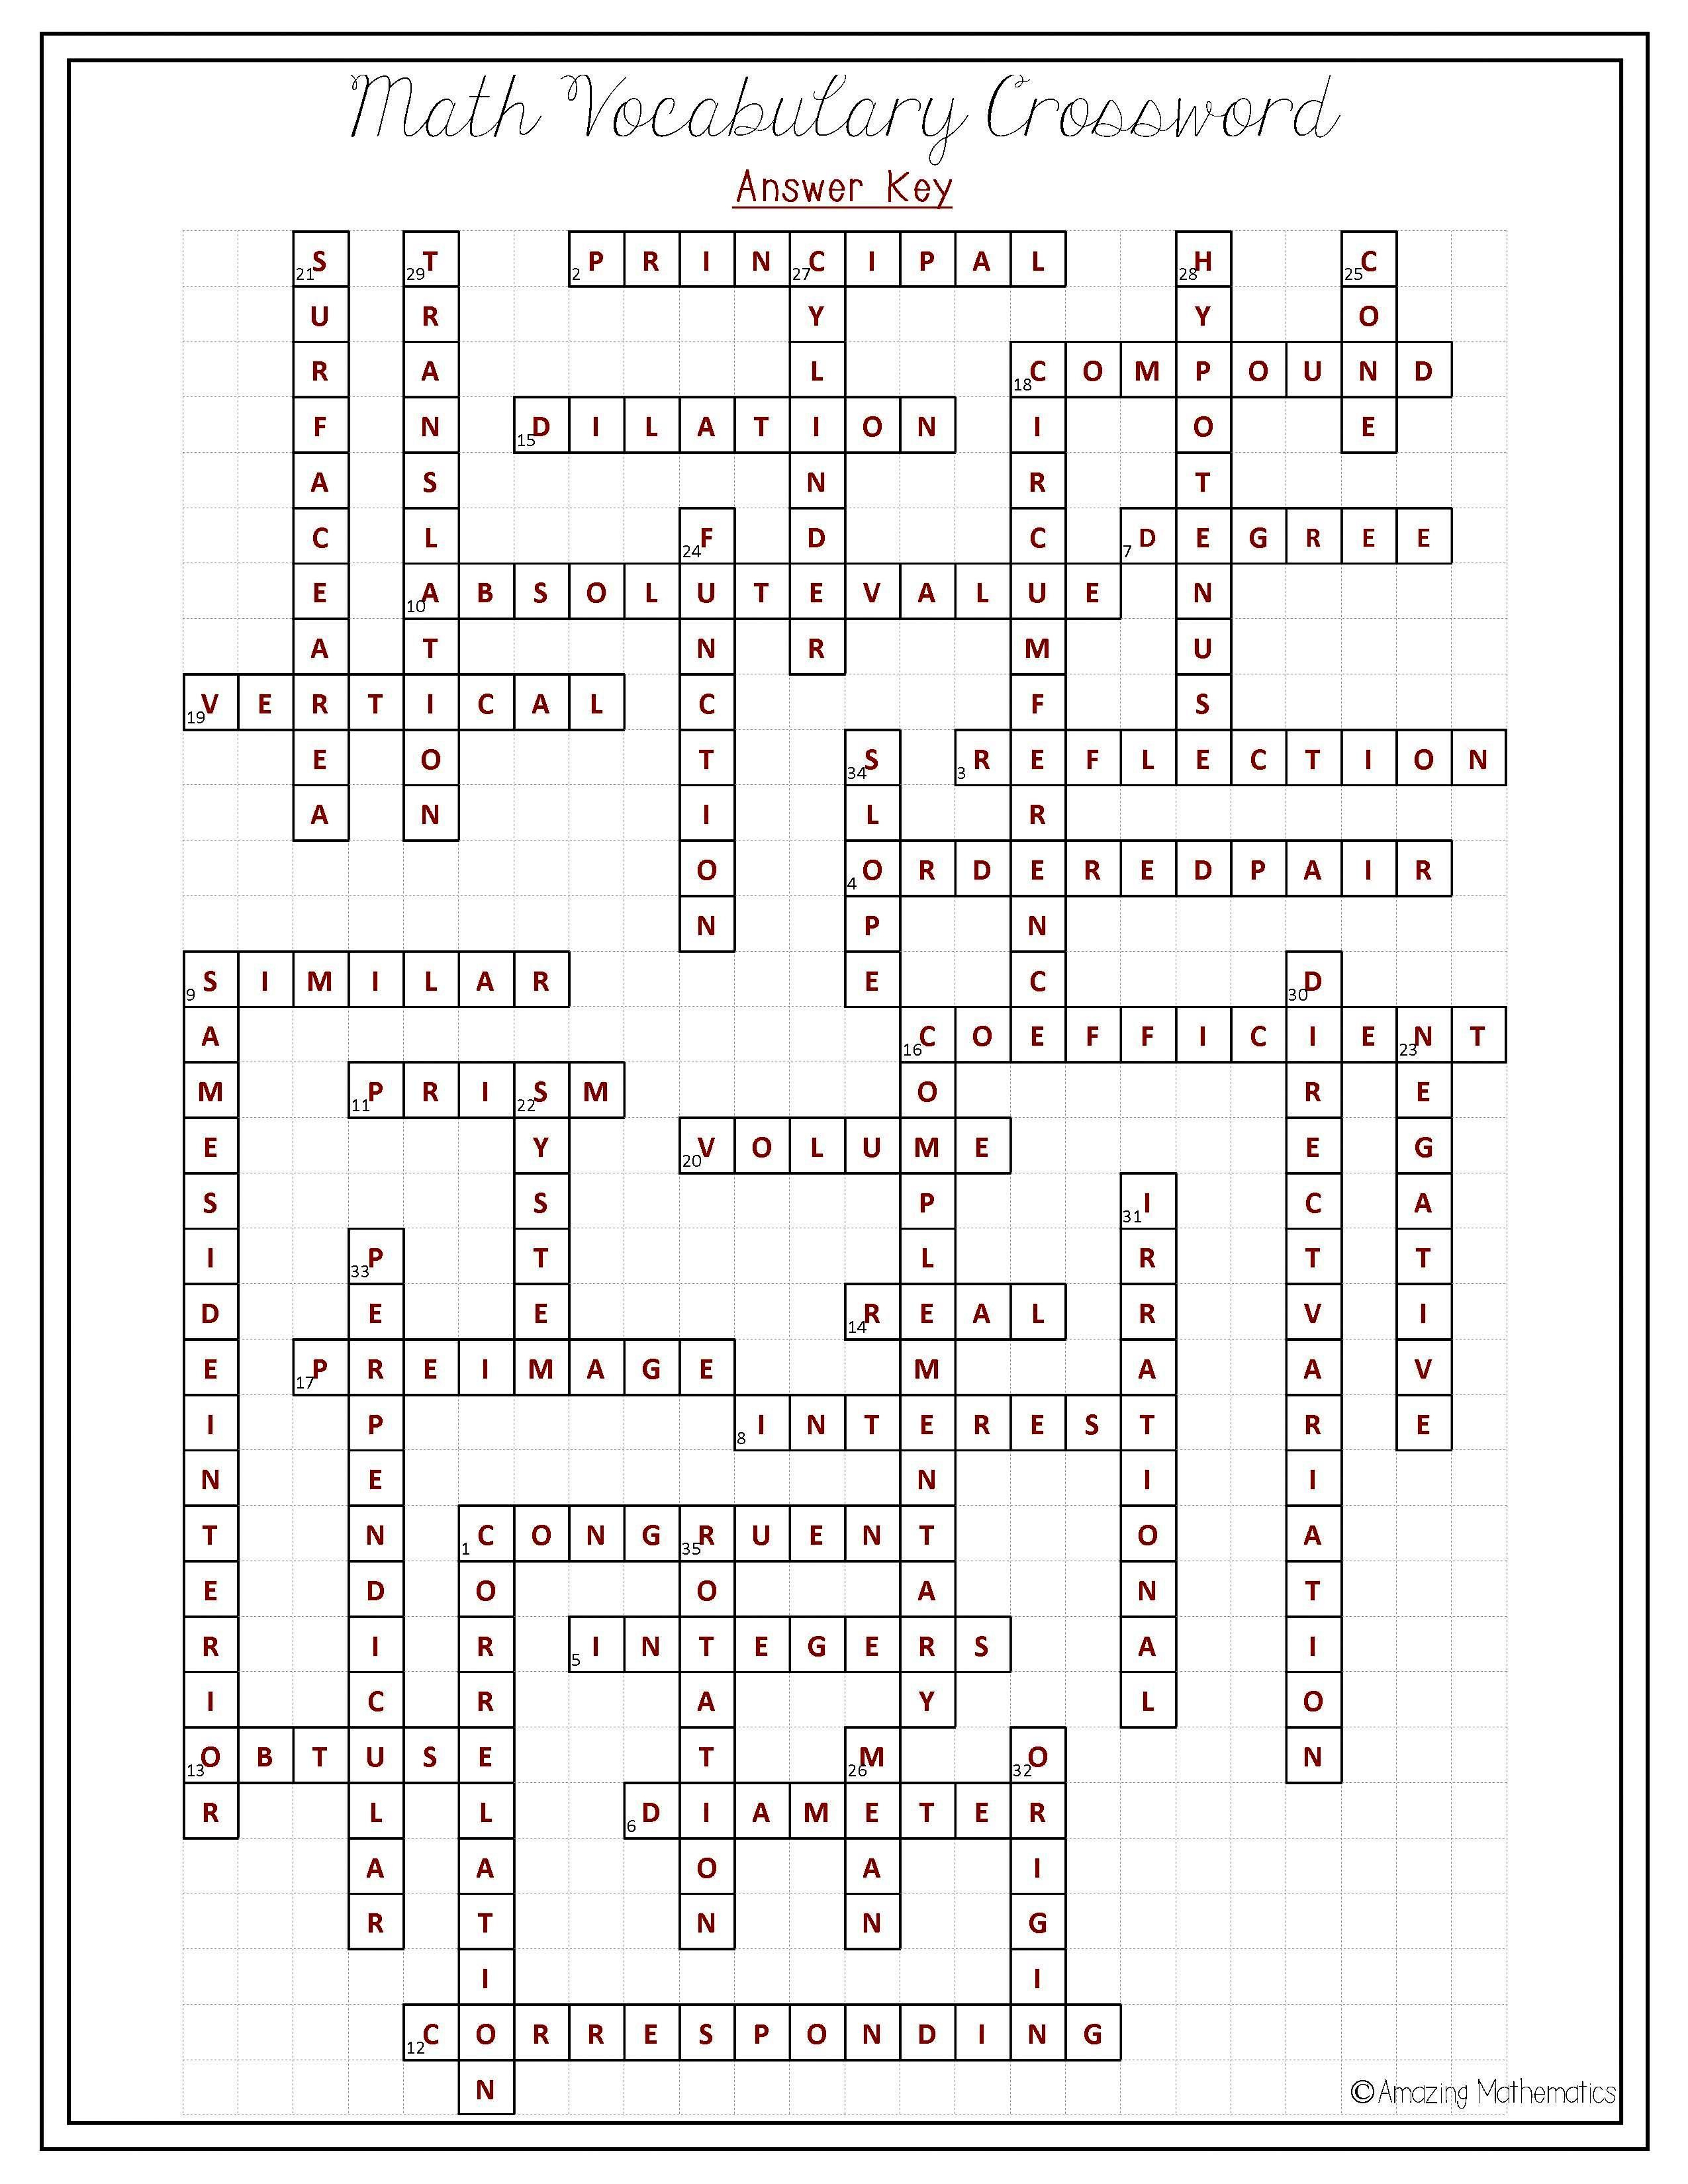 8Th Grade Math Vocabulary Crossword | Puzzles | Math Vocabulary, 8Th - Math Vocabulary Crossword Puzzles Printable